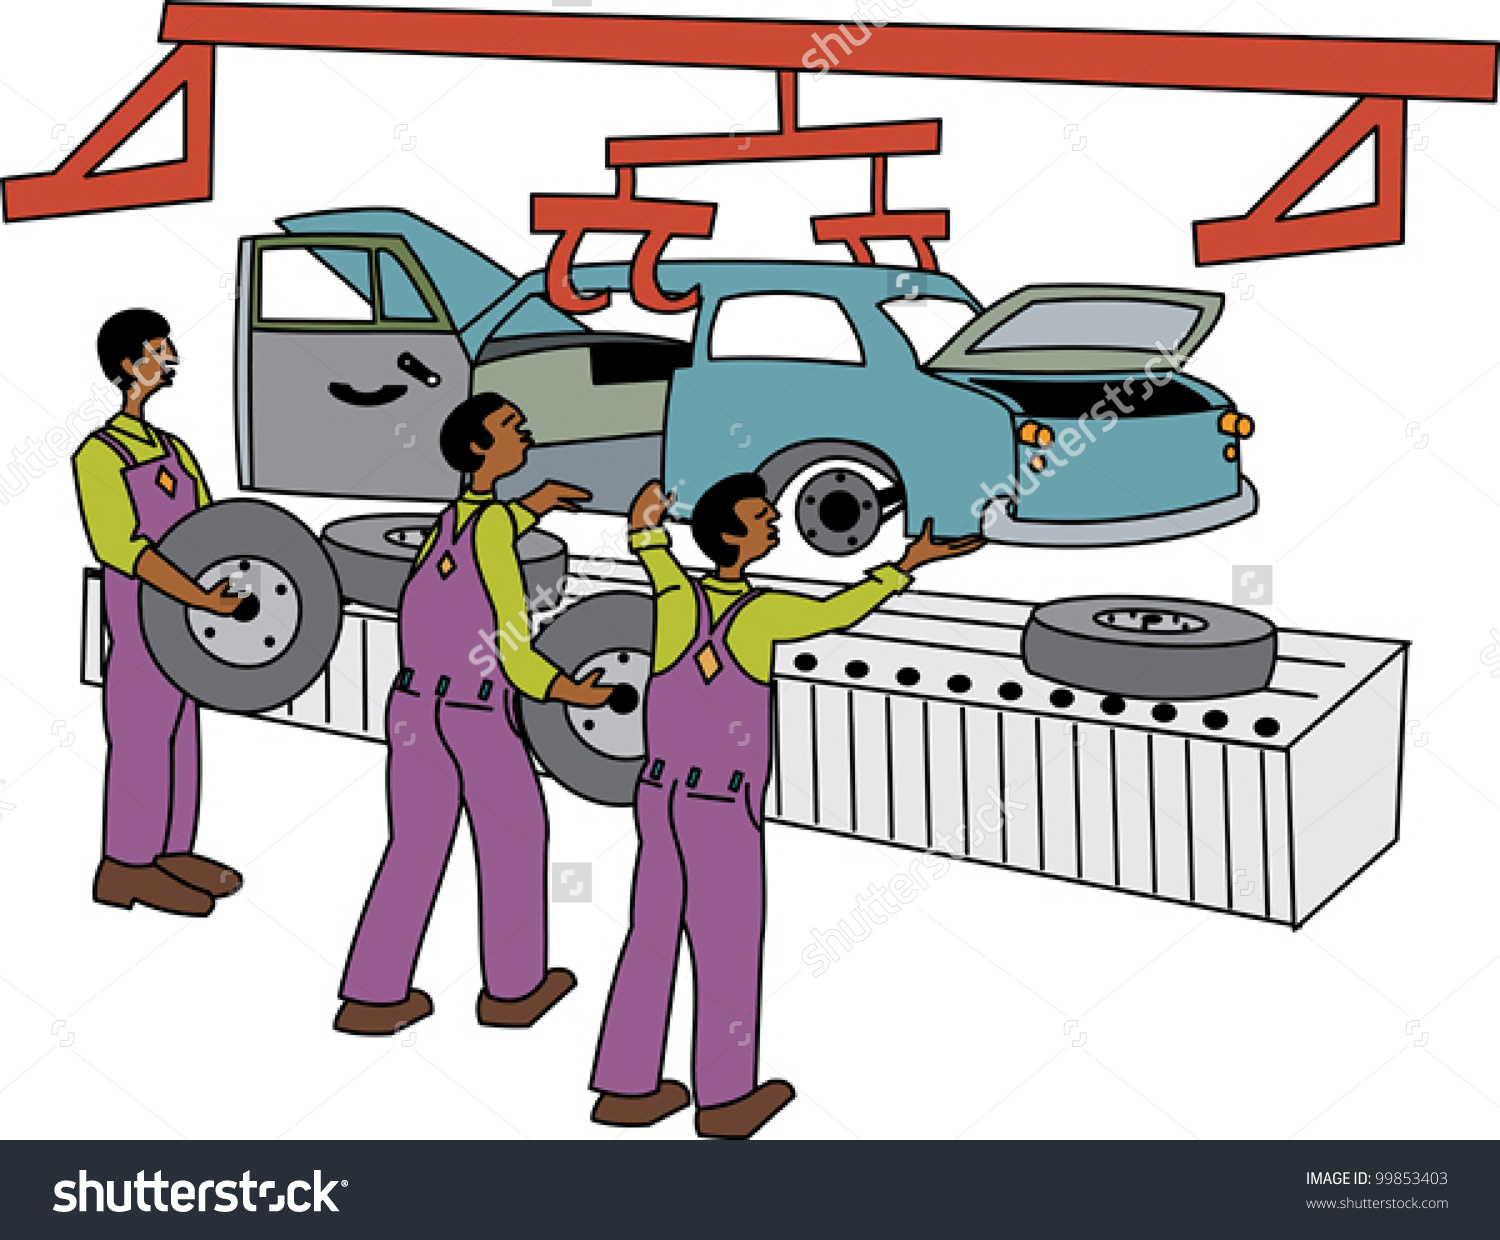 Assemble car clipart.